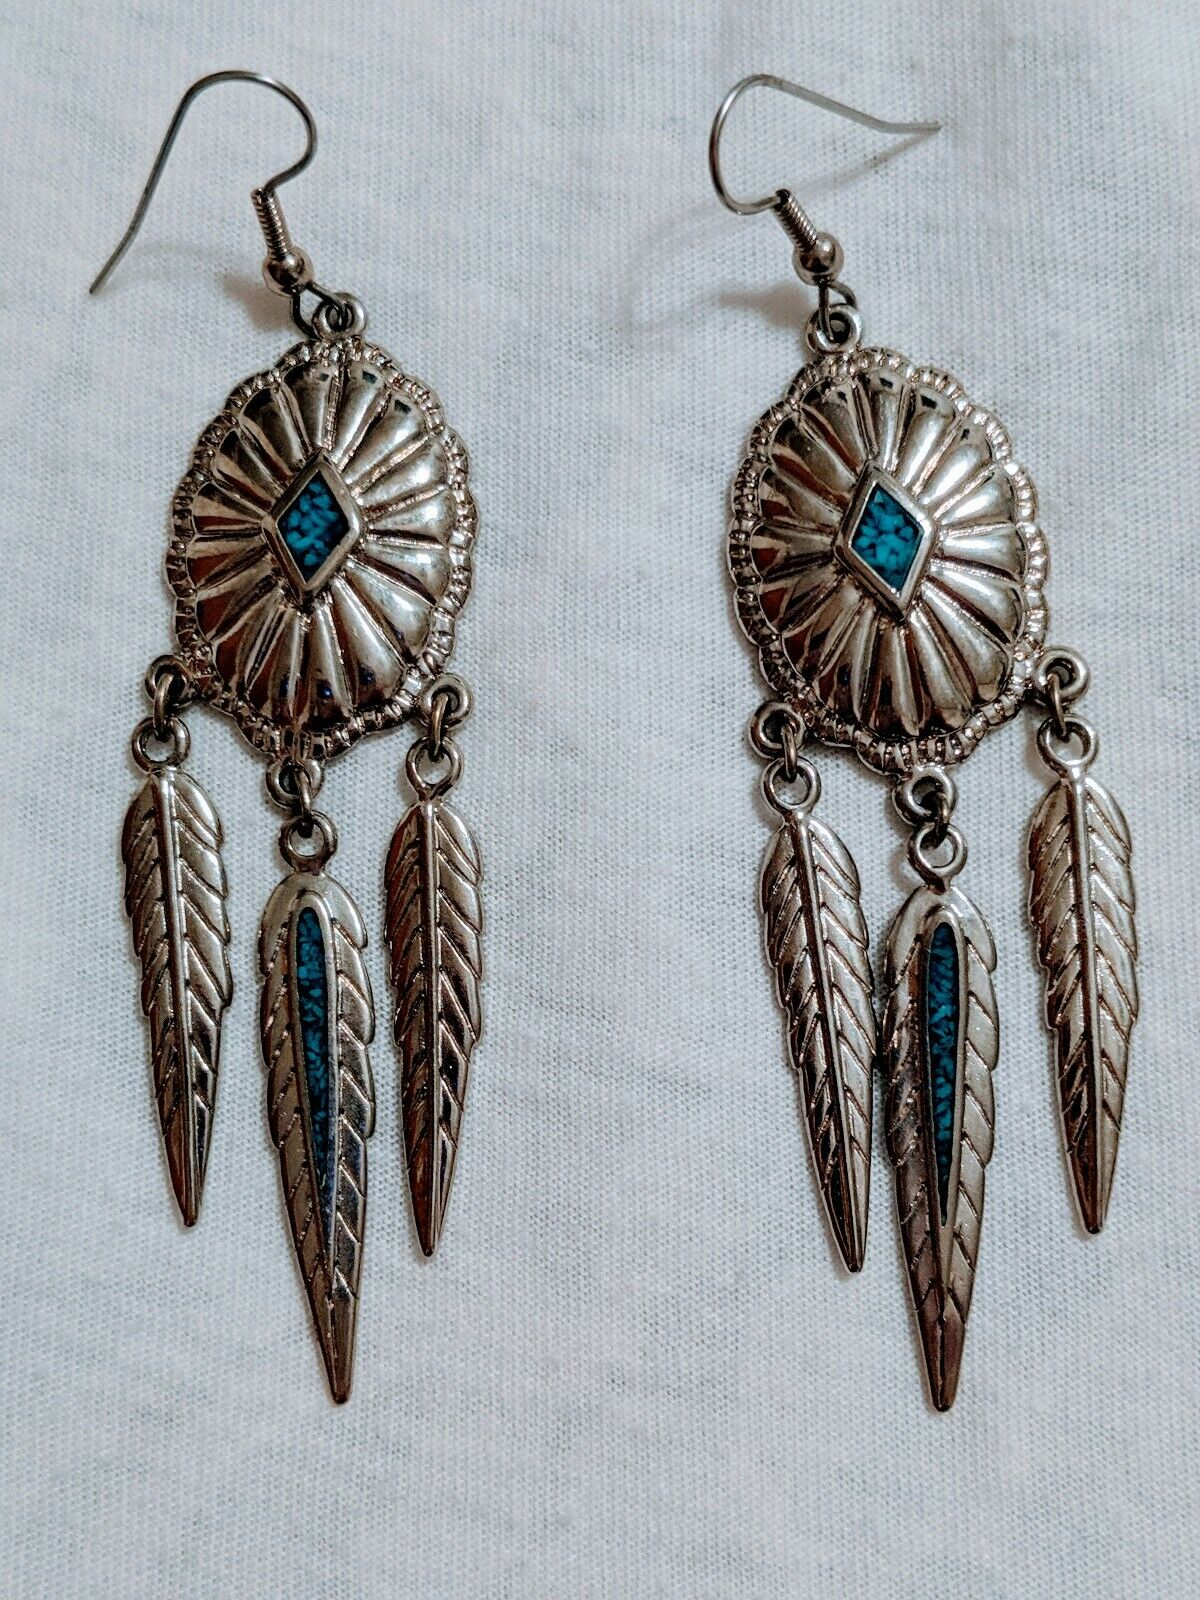 1 pair of dream catcher earrings pink glass drops